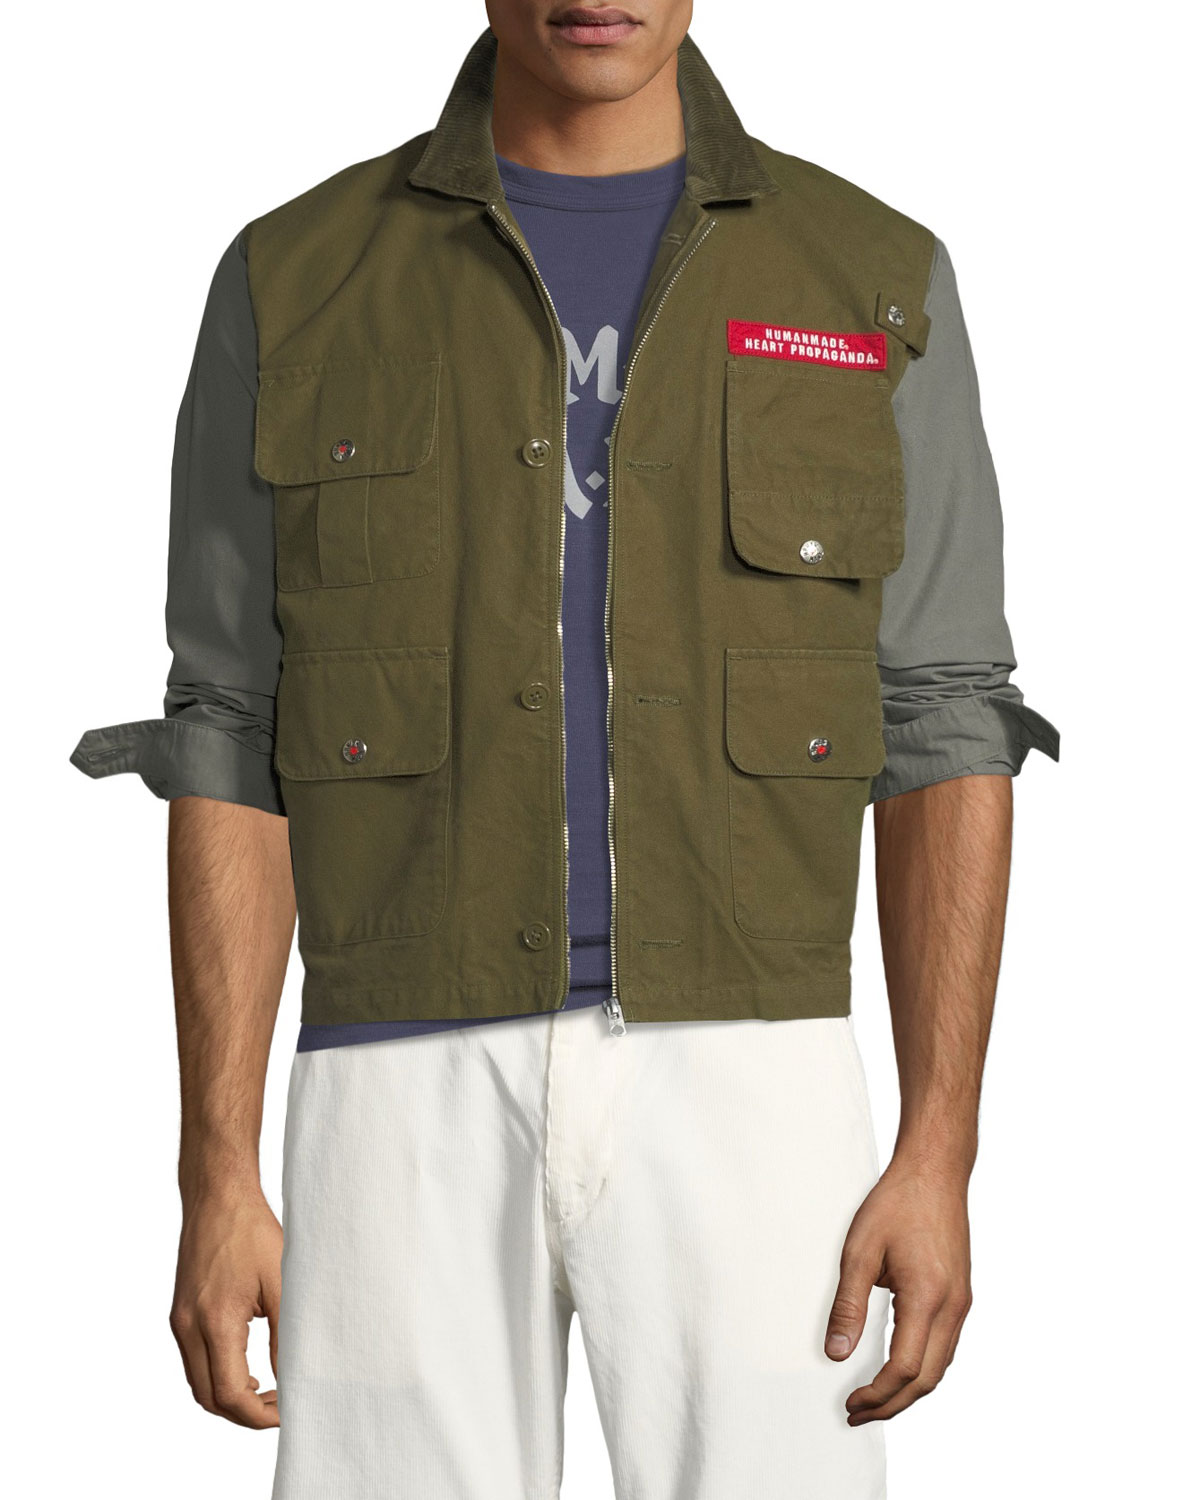 HUMAN MADE Men'S Colorblock Twill Hunting Jacket in Olive